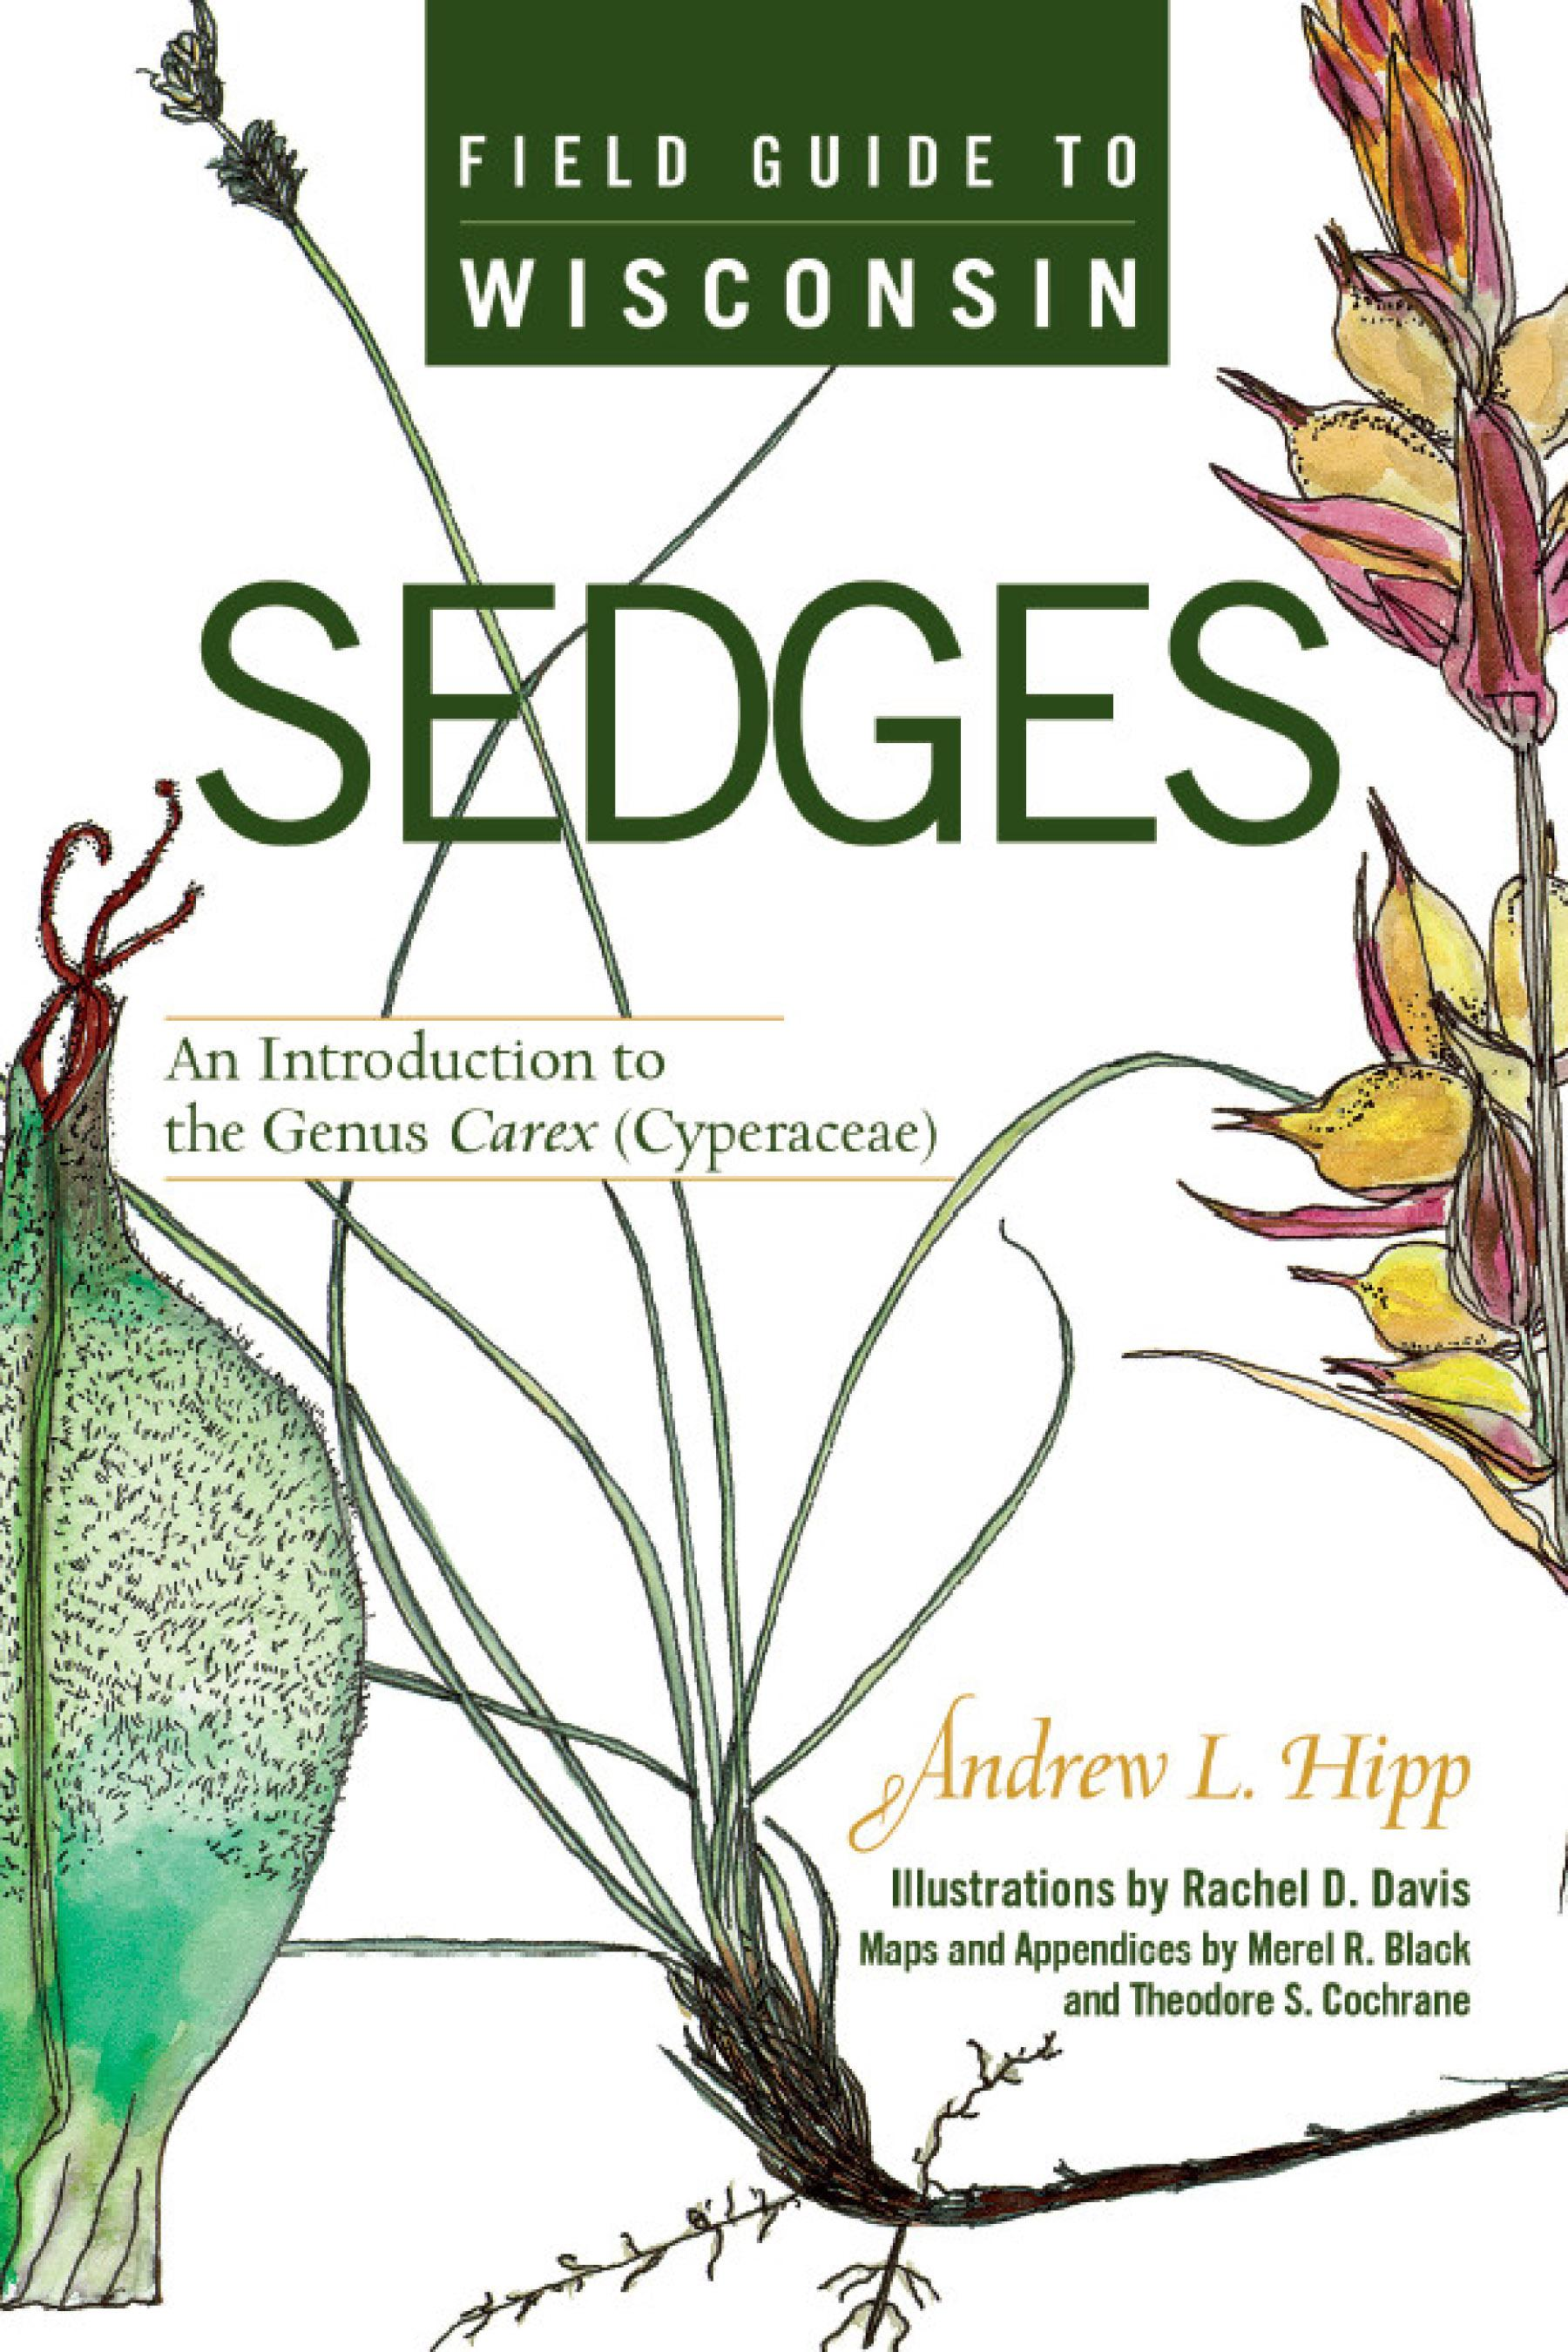 Field Guide to Wisconsin Sedges: An Introduction to the Genus Carex (Cyperaceae) EB9780299225933